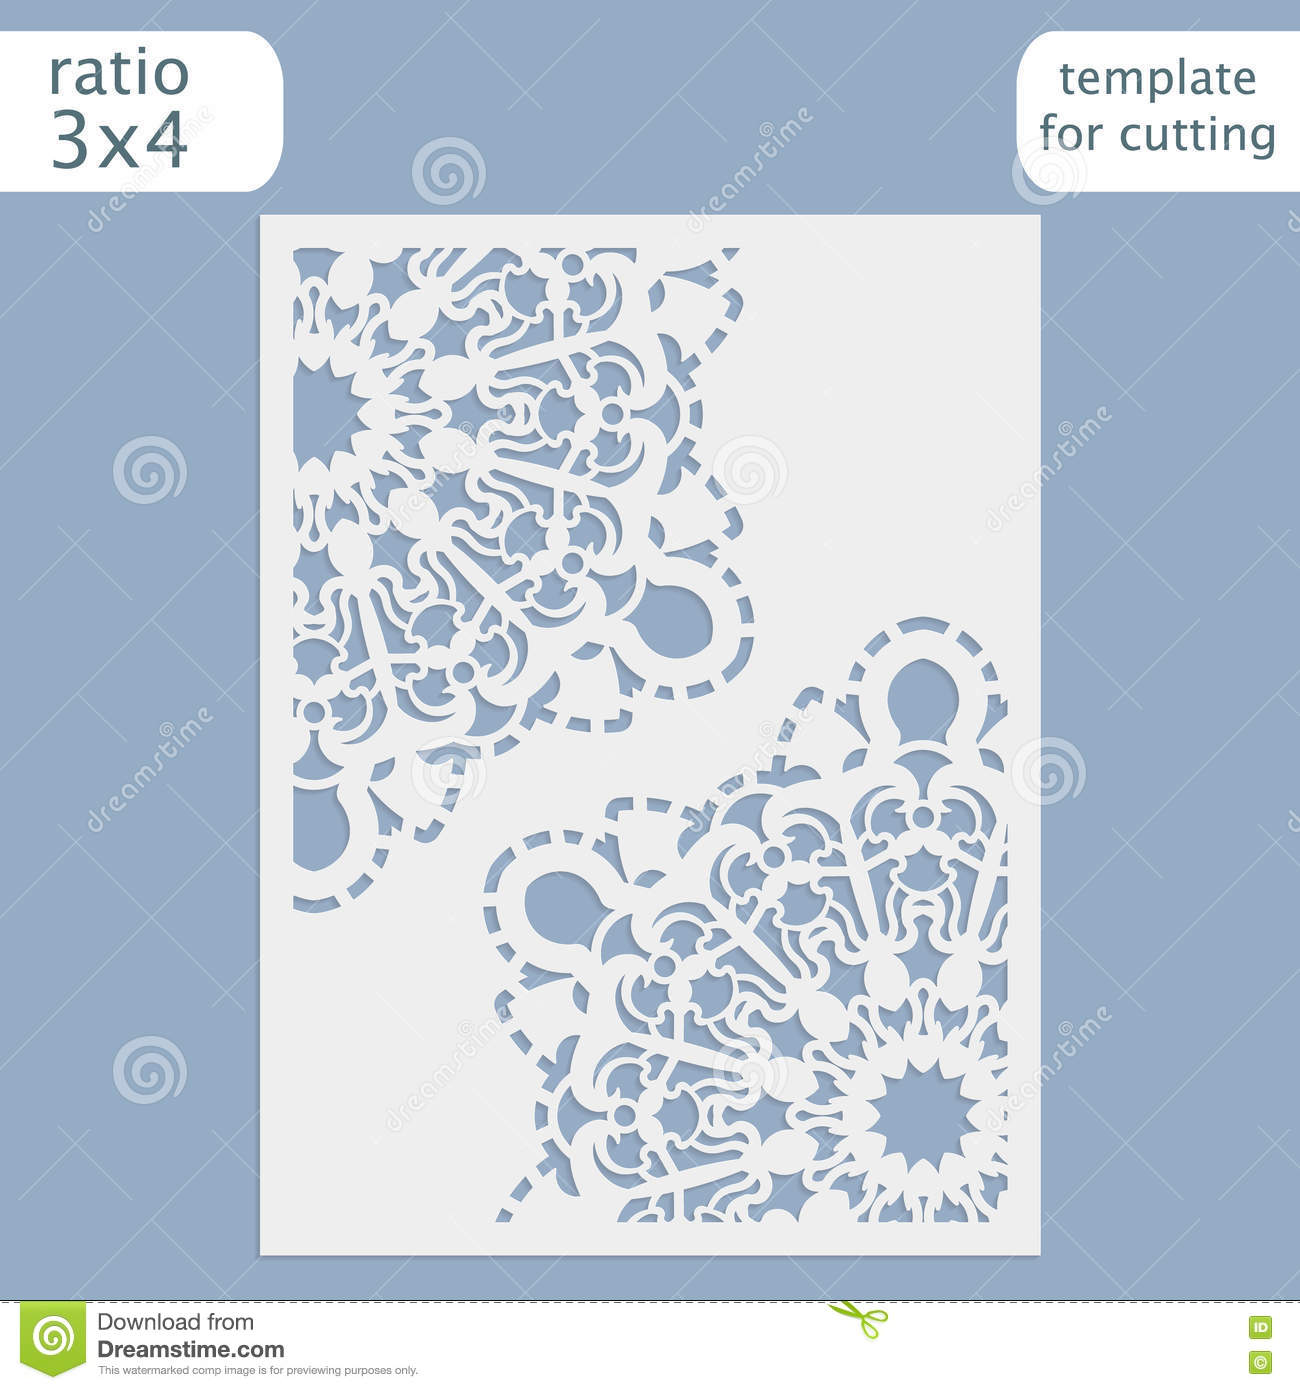 Laser cut wedding invitation card template vector cut out the paper laser cut wedding invitation card template vector cut out the paper card with lace pattern greeting card template for cutting location ornament stopboris Choice Image